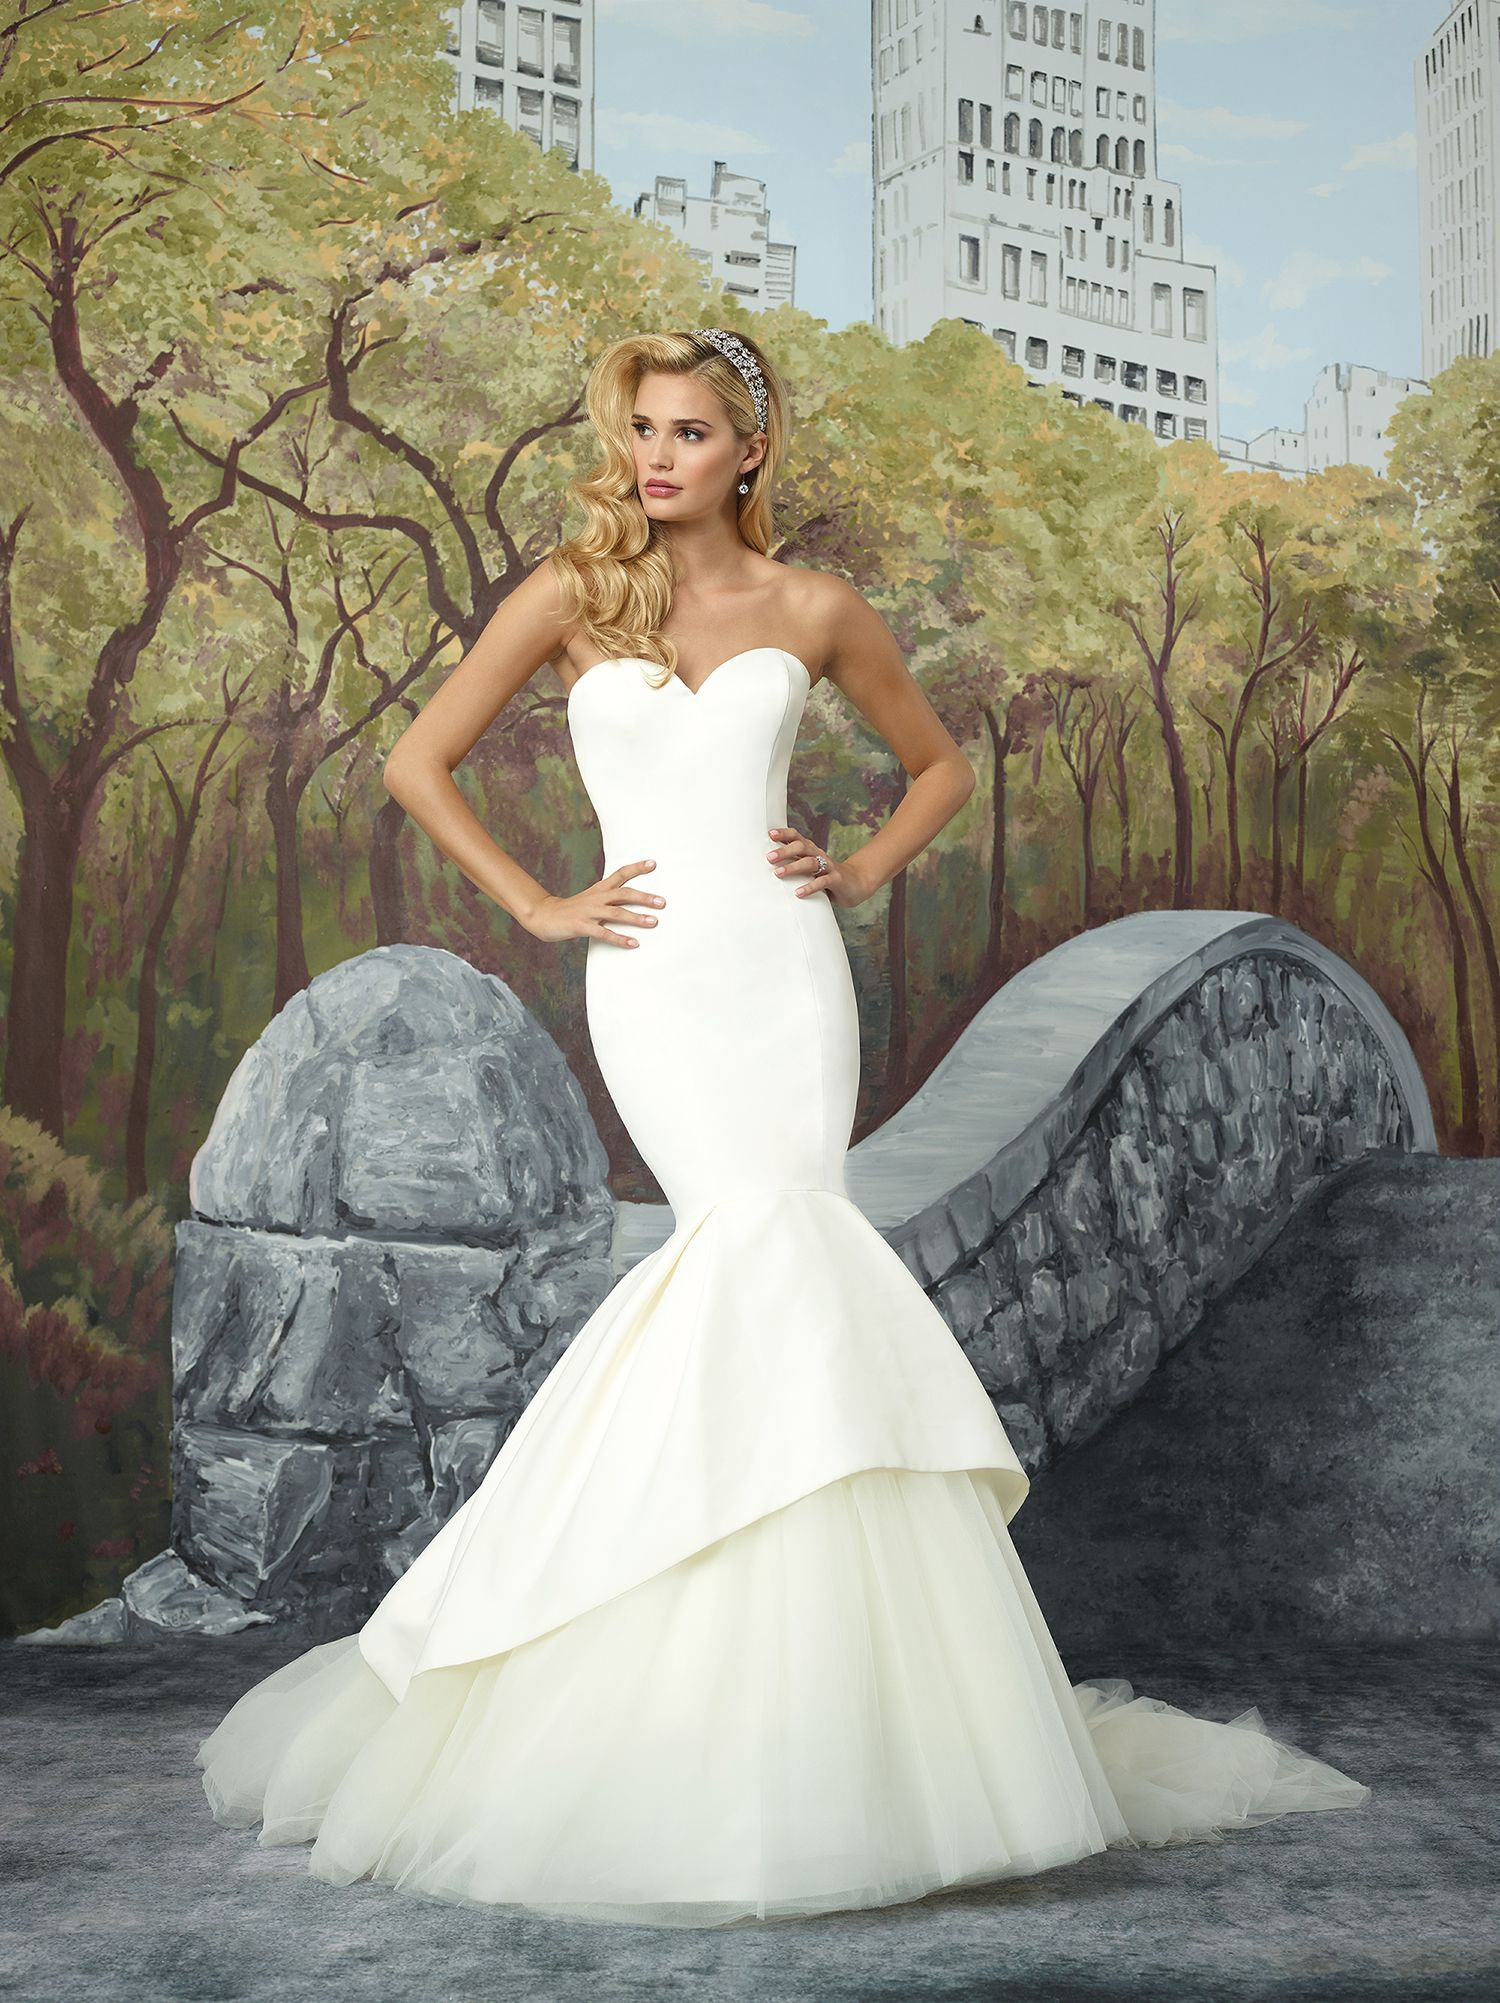 4dca0d7c7883 New Bridal Gown Available at Ella Park Bridal | Newburgh, IN | 812.853.1800  | Justin Alexander - Style 8933